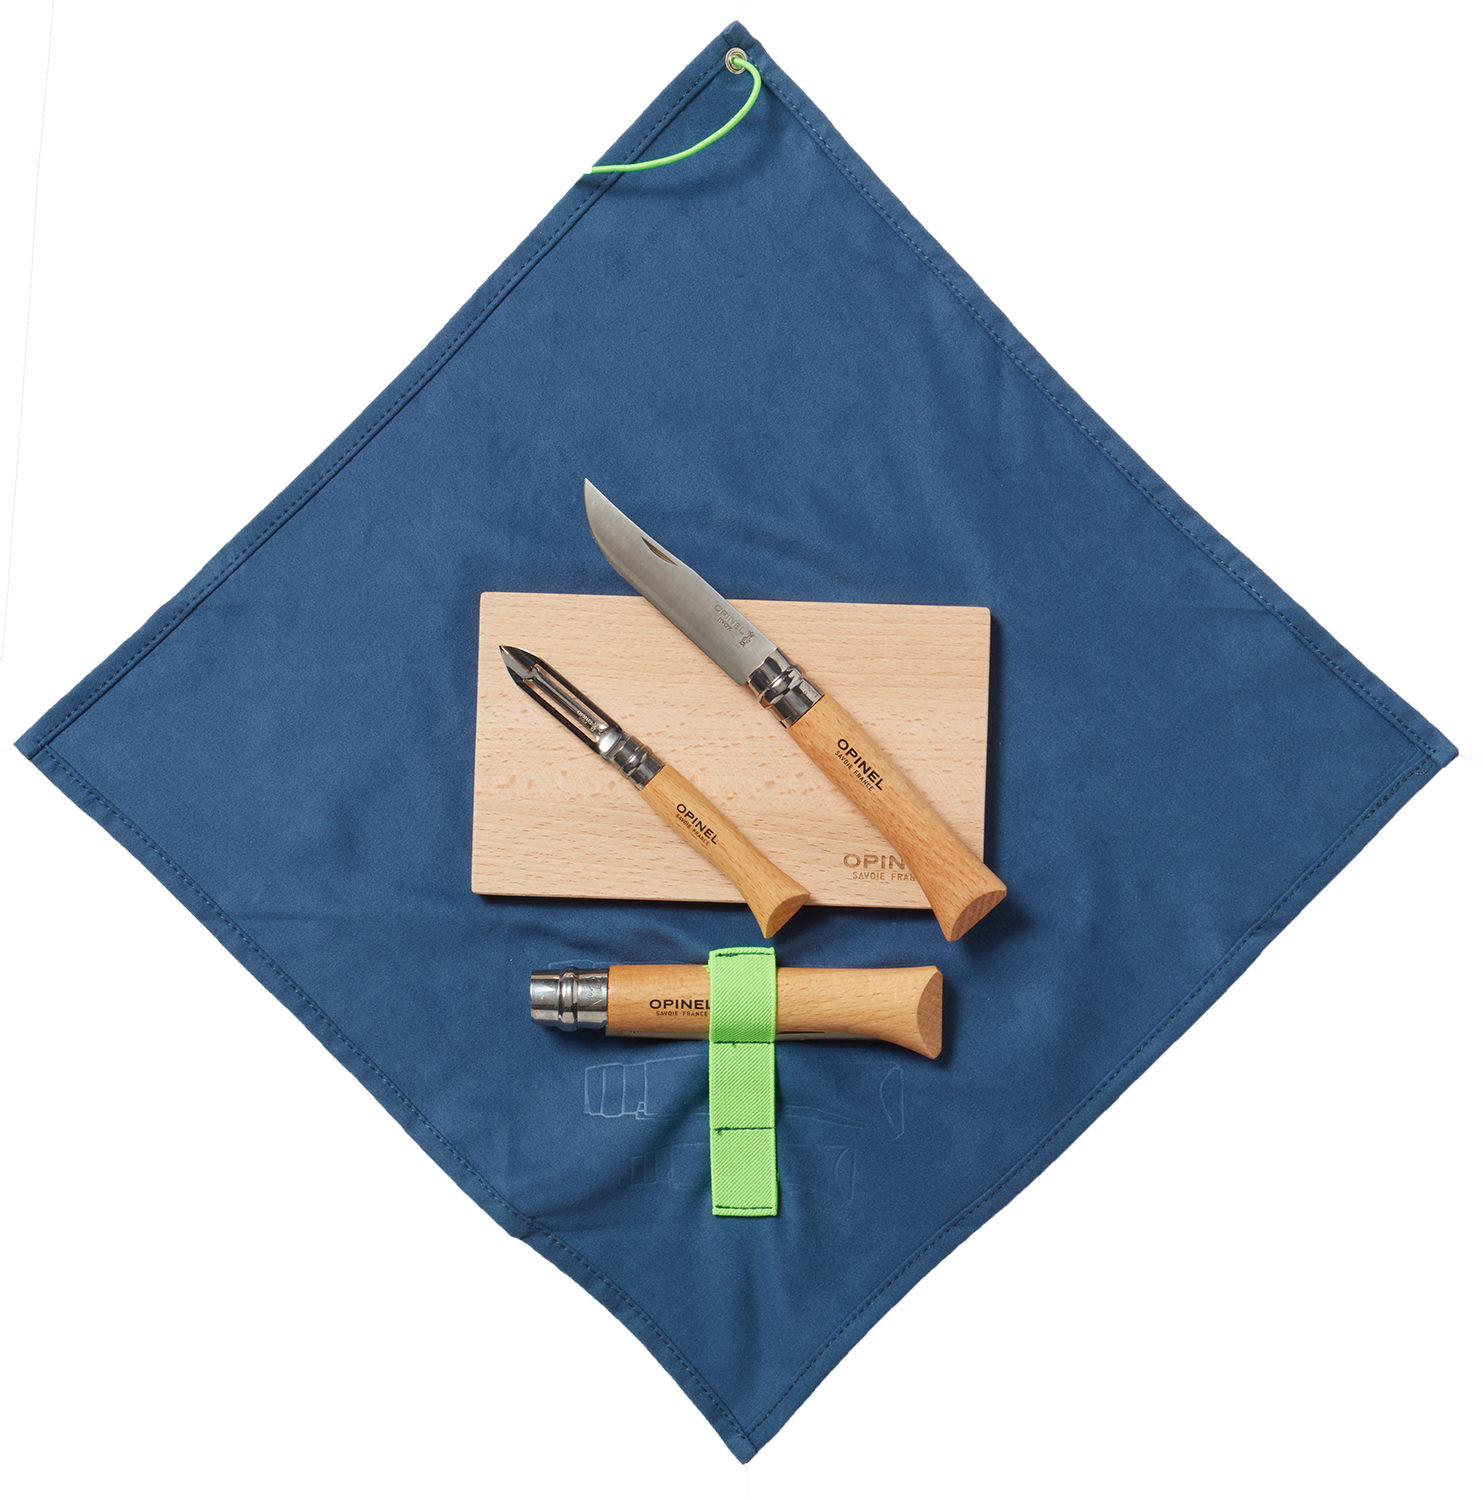 clever-items-0719HLP-knife-kit